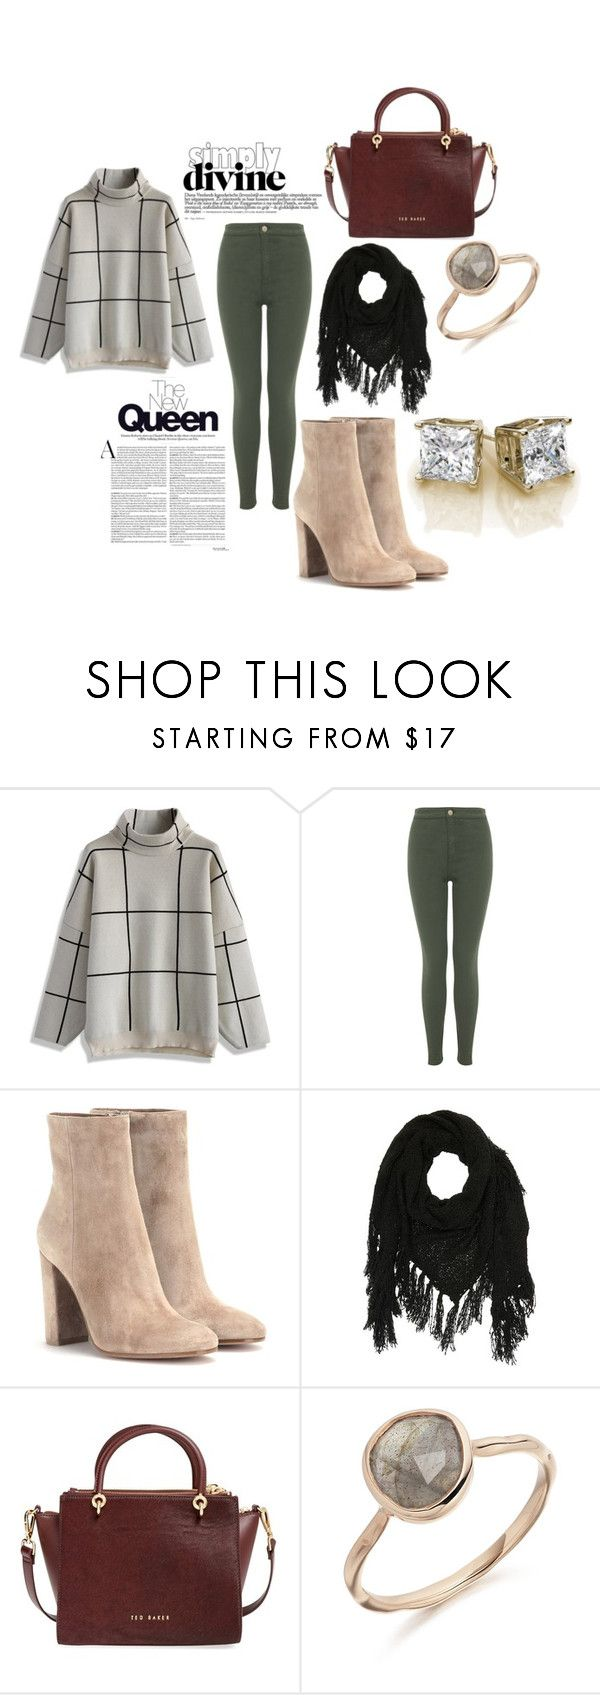 """Sin título #1559"" by paularamirez12 ❤ liked on Polyvore featuring Chicwish, Miss Selfridge, Gianvito Rossi, Charlotte Russe and Ted Baker"